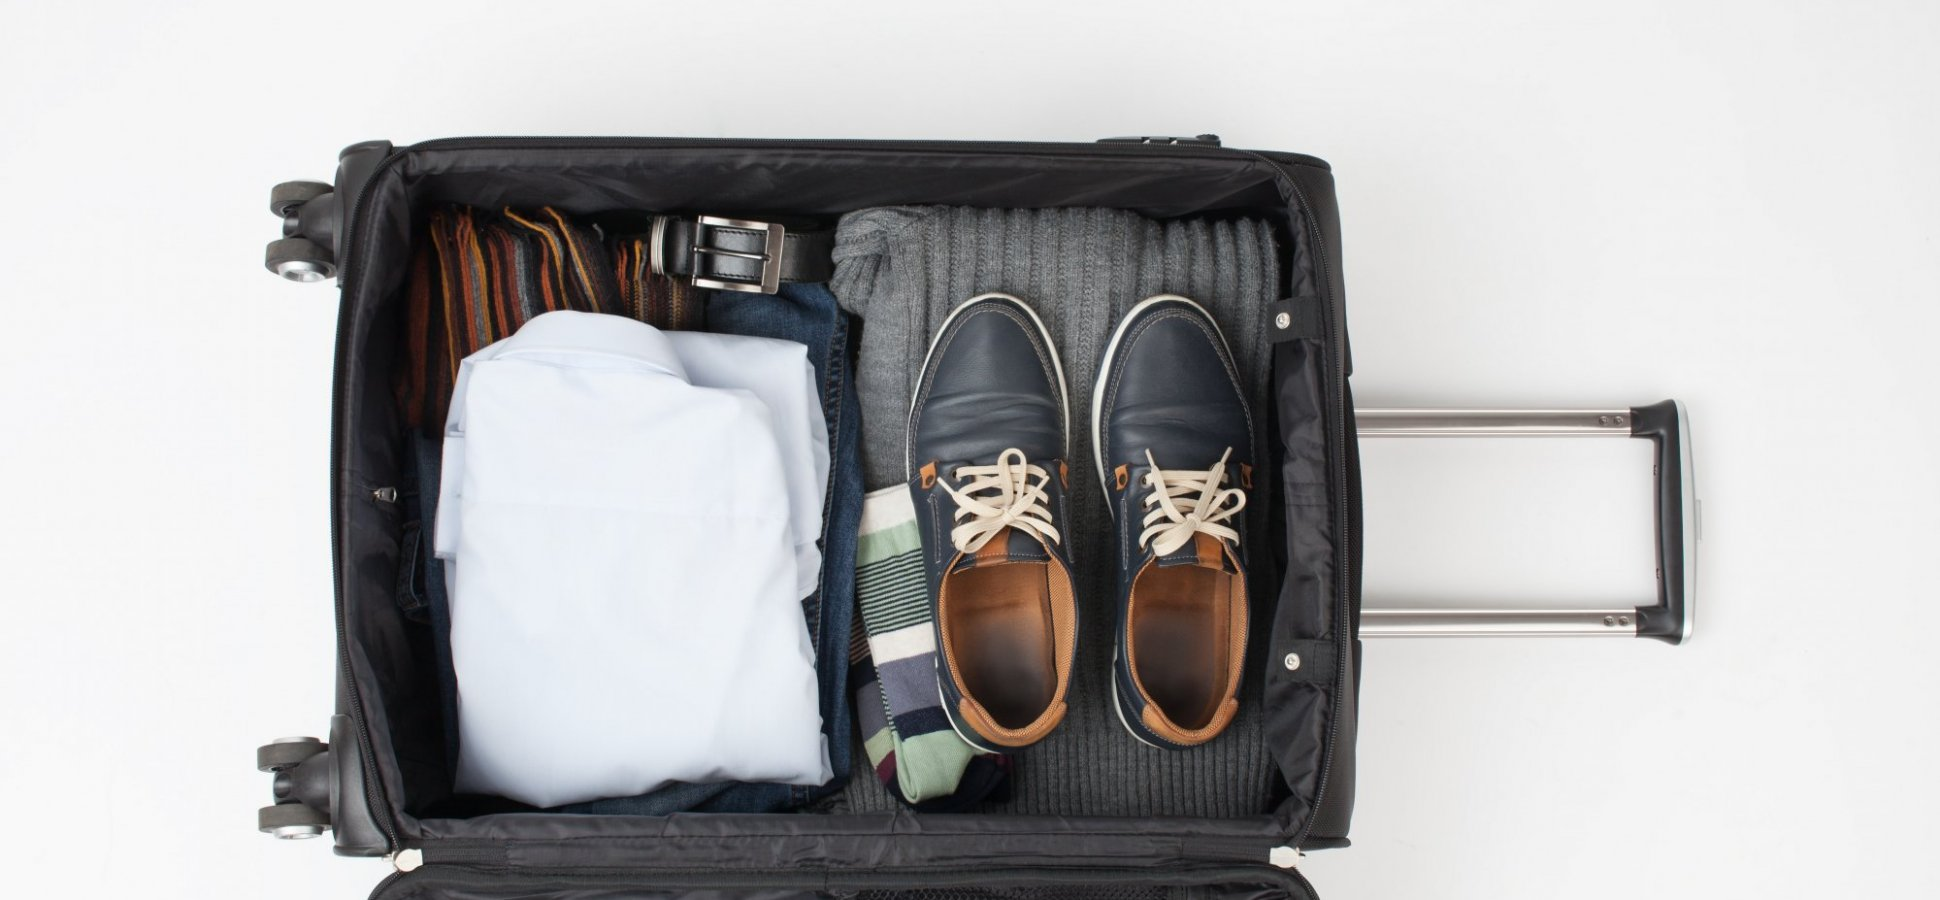 10 Items Business Travelers Always Pack But Don't Need To